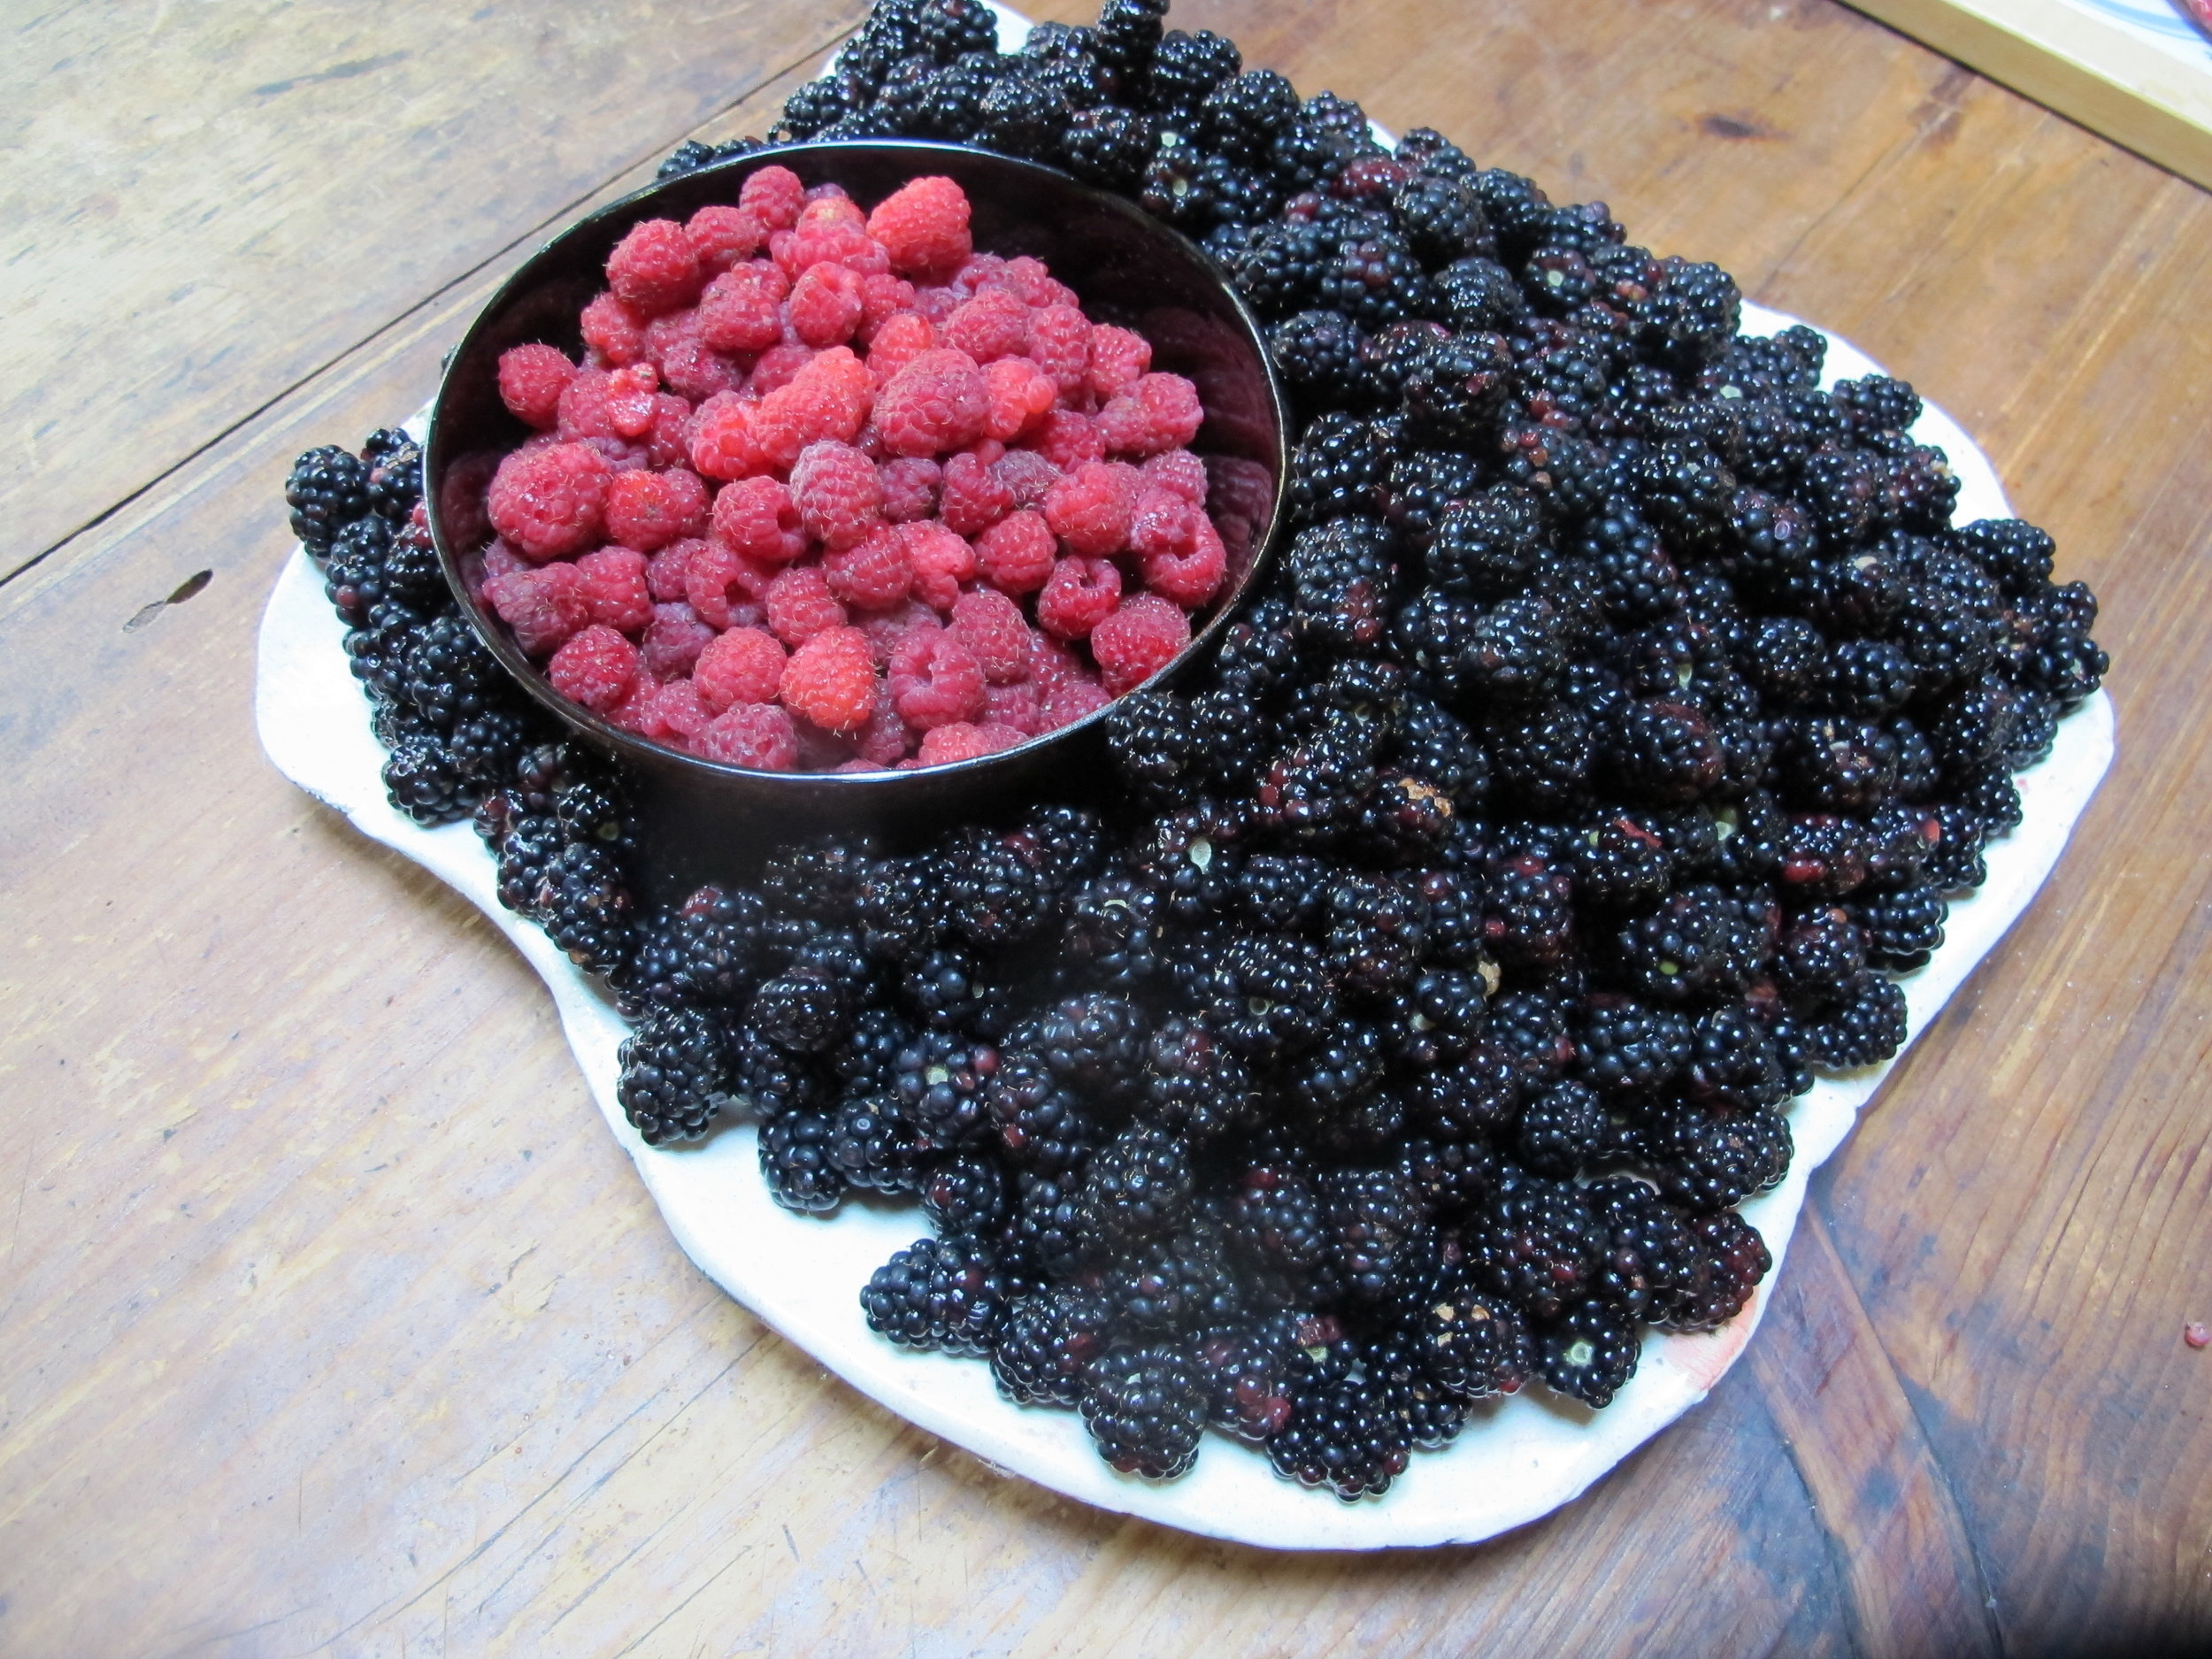 Blackberries and red raspberries, the summer jewels that sit in the freezer will become part of our wild berry relish.